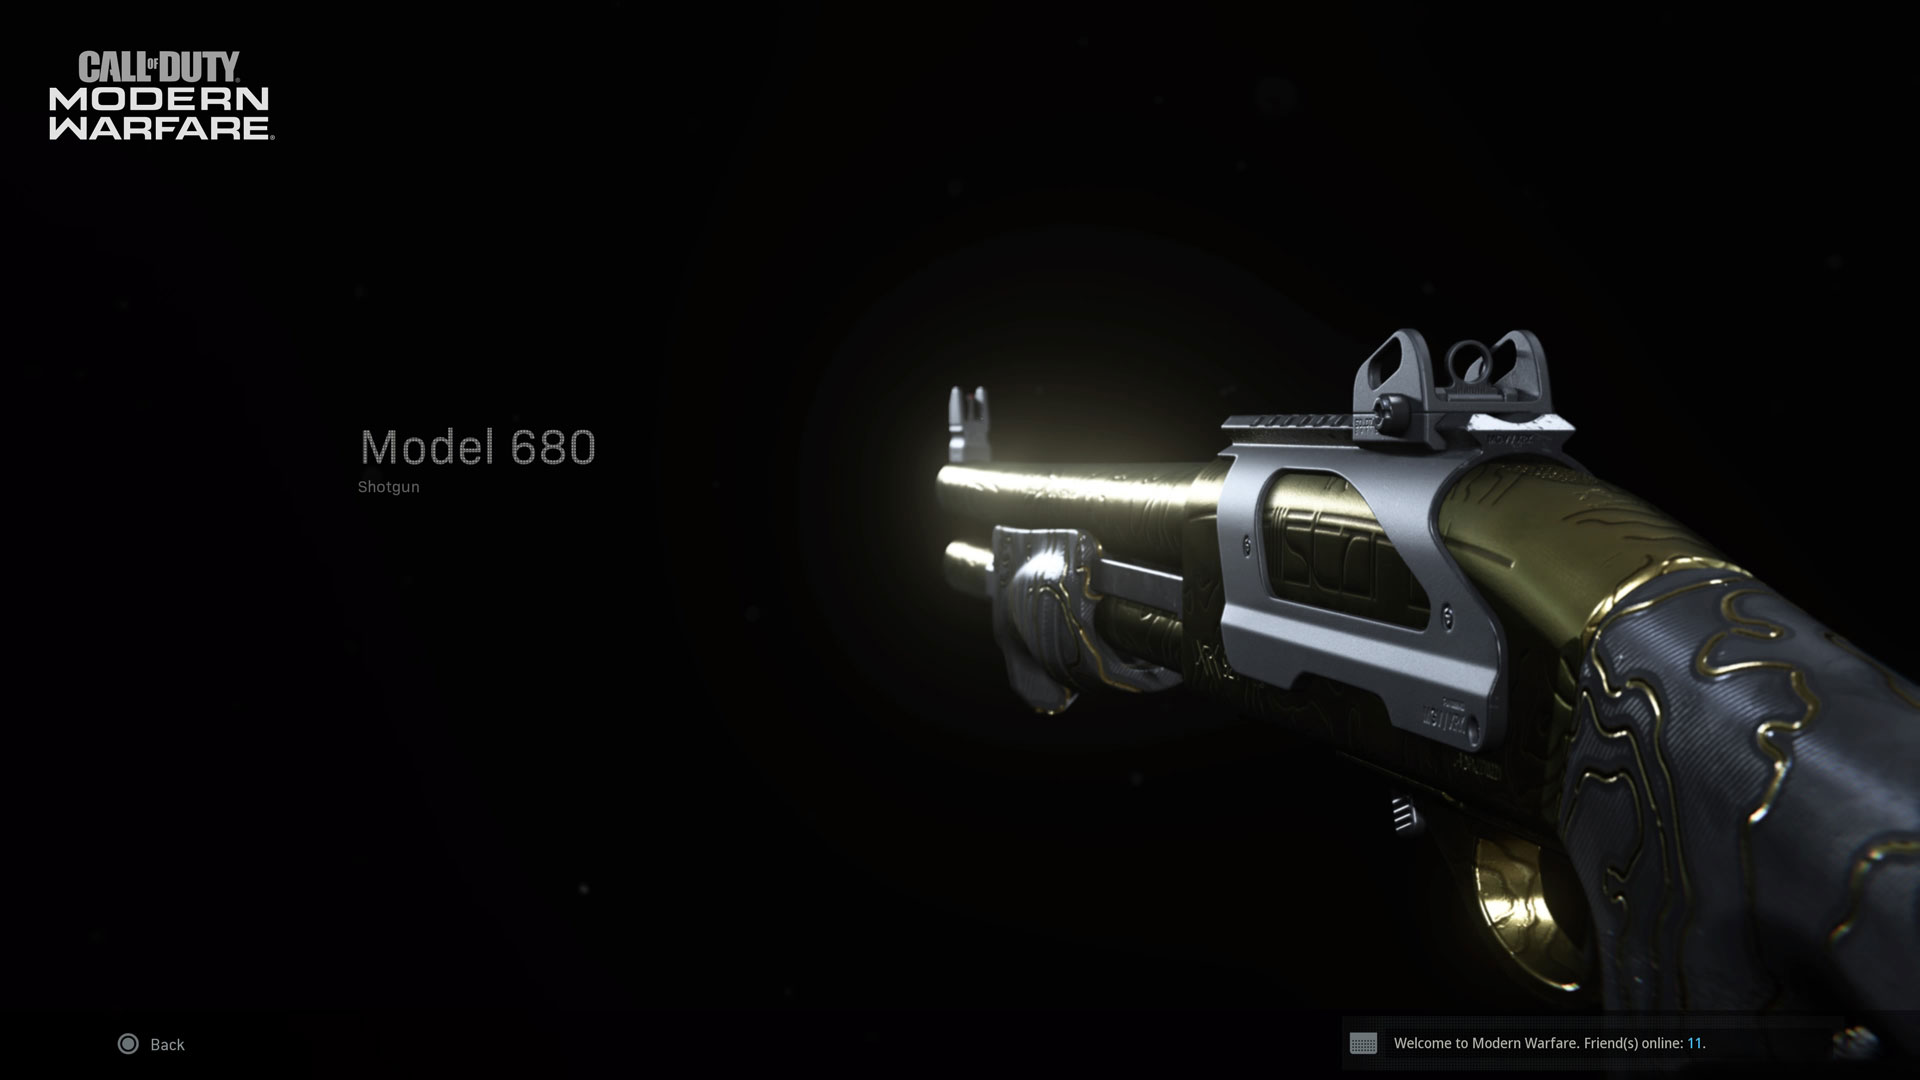 Become a True Weapon Master with Obsidian Camo, Now in Call of Duty:® Modern Warfare® - Image 3